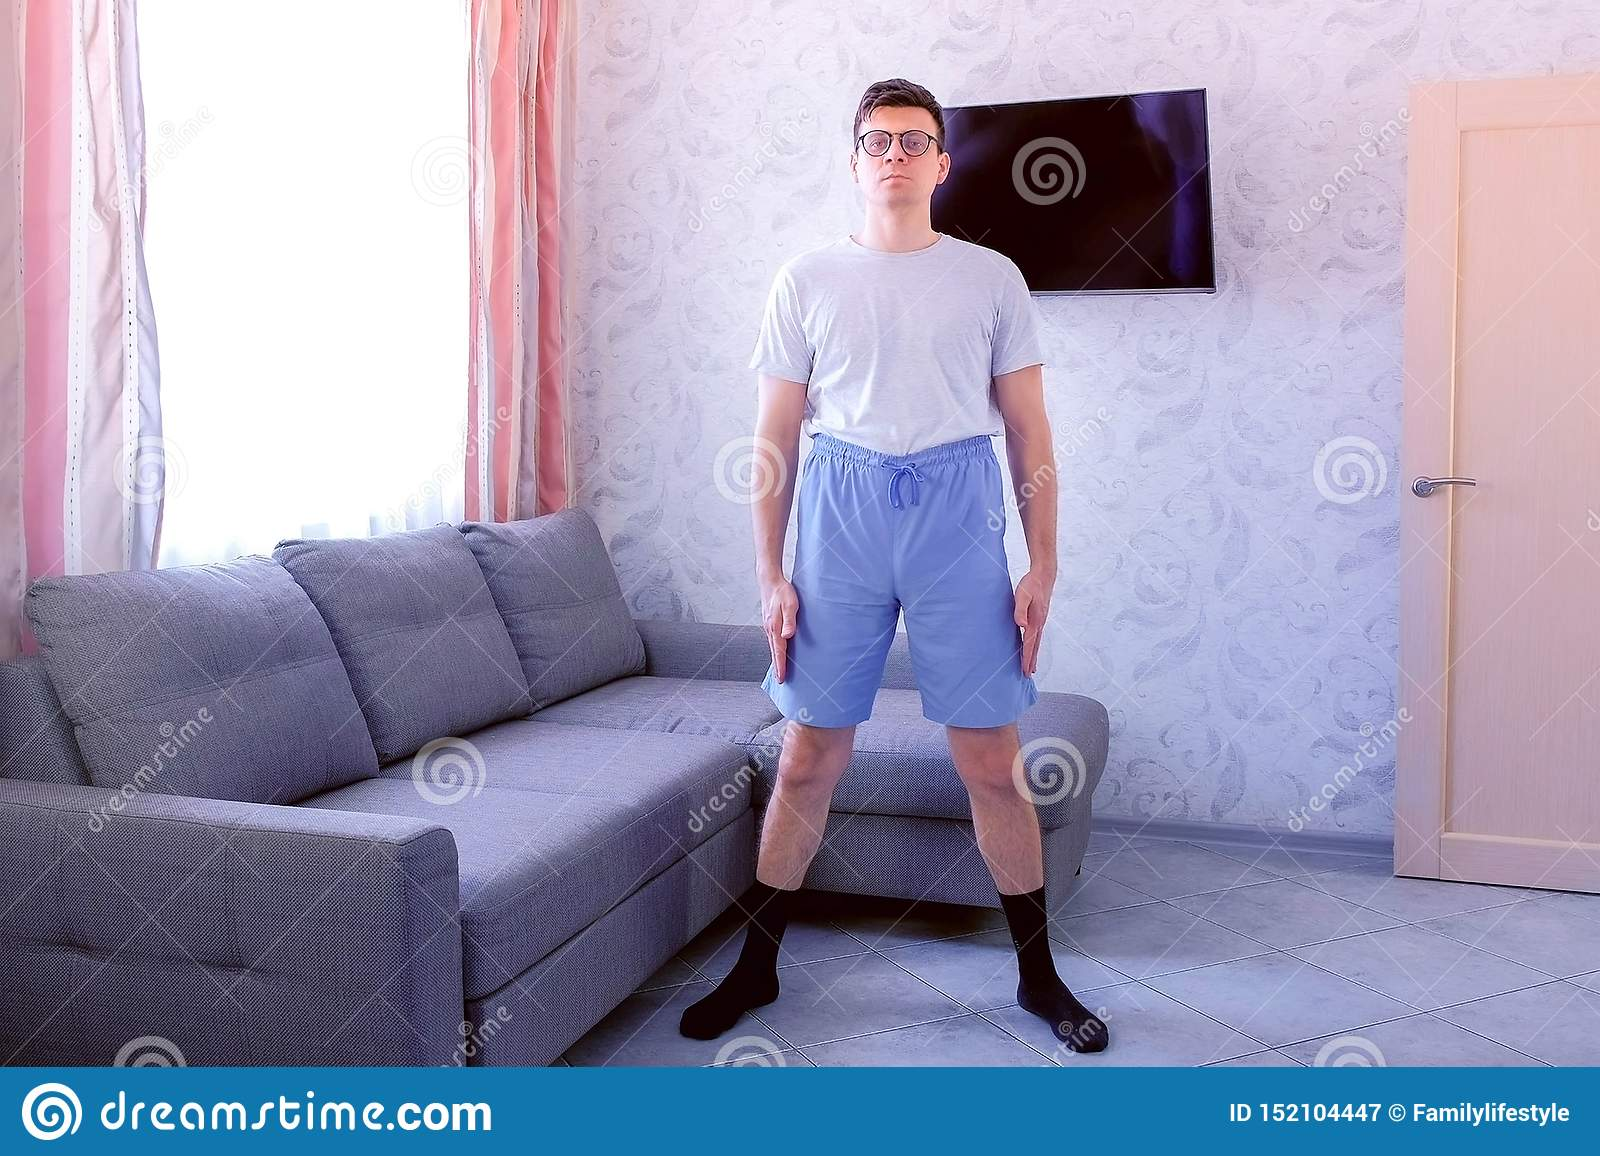 Funny Nerd Man Is Doing Fitness Exercises Pelvis Rotations At Home Sport Humor Concept Stock Image Image Of Socks Exercise 152104447